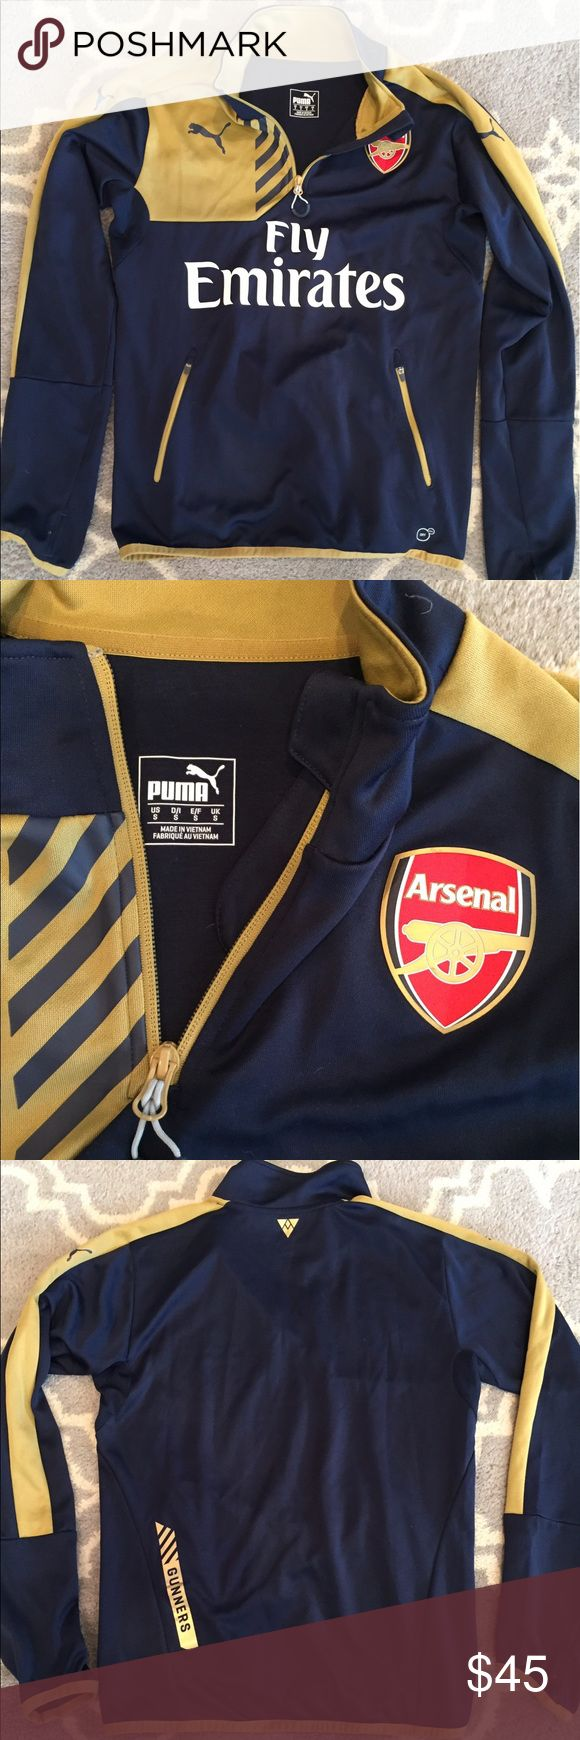 Fly Emirates Puma Pullover This is a mint condition, Fly Emirates pullover. Perfect condition and has thumb holes! Puma Jackets & Coats Performance Jackets